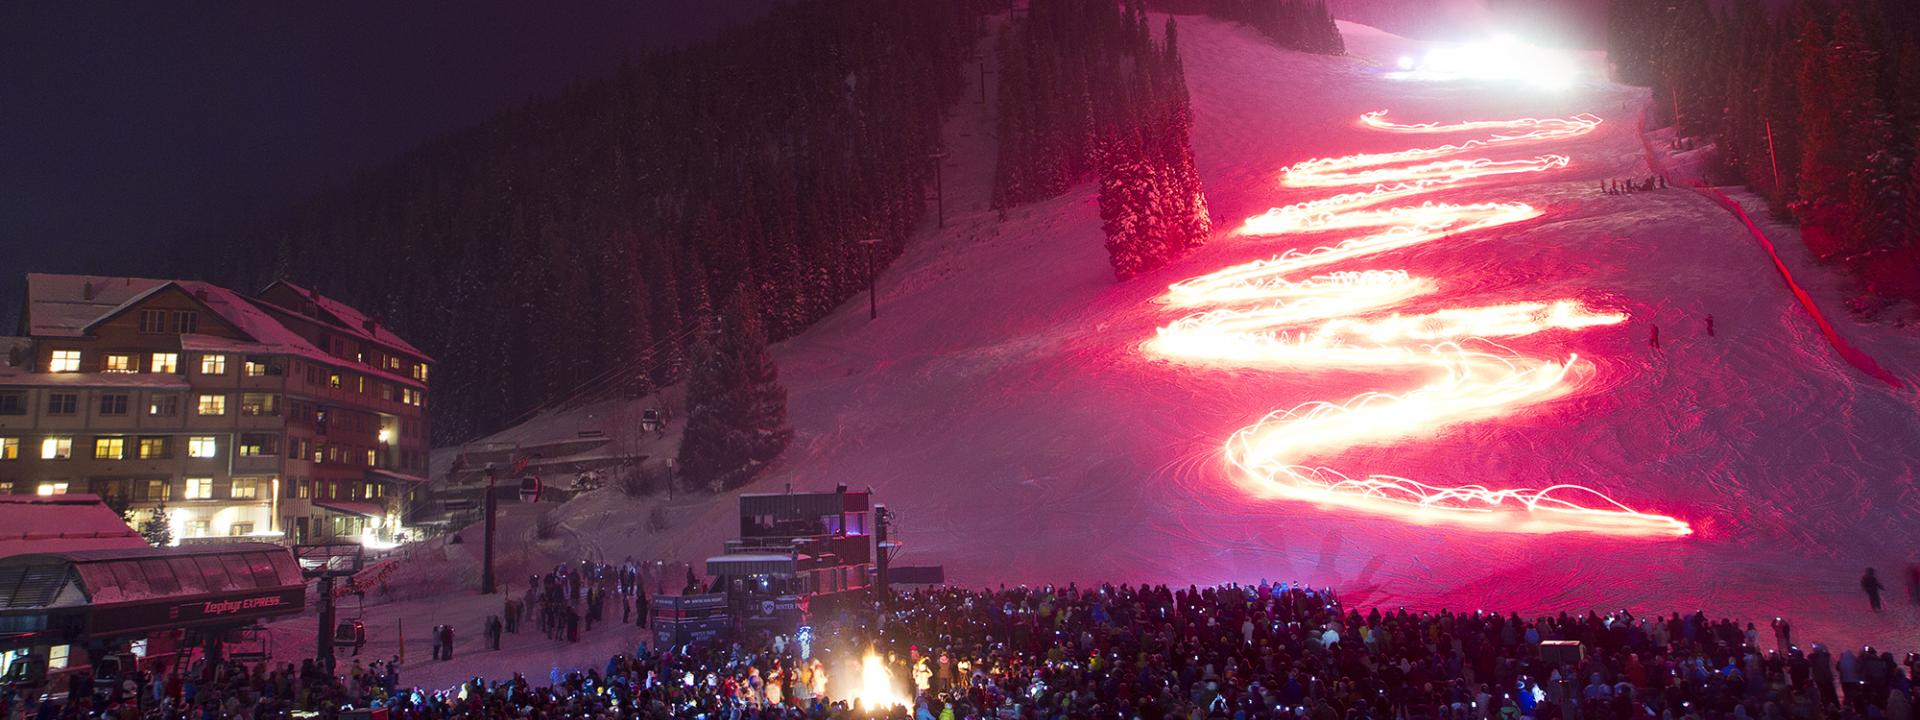 Torchlight Parade at Winter Park Resort in Colorado